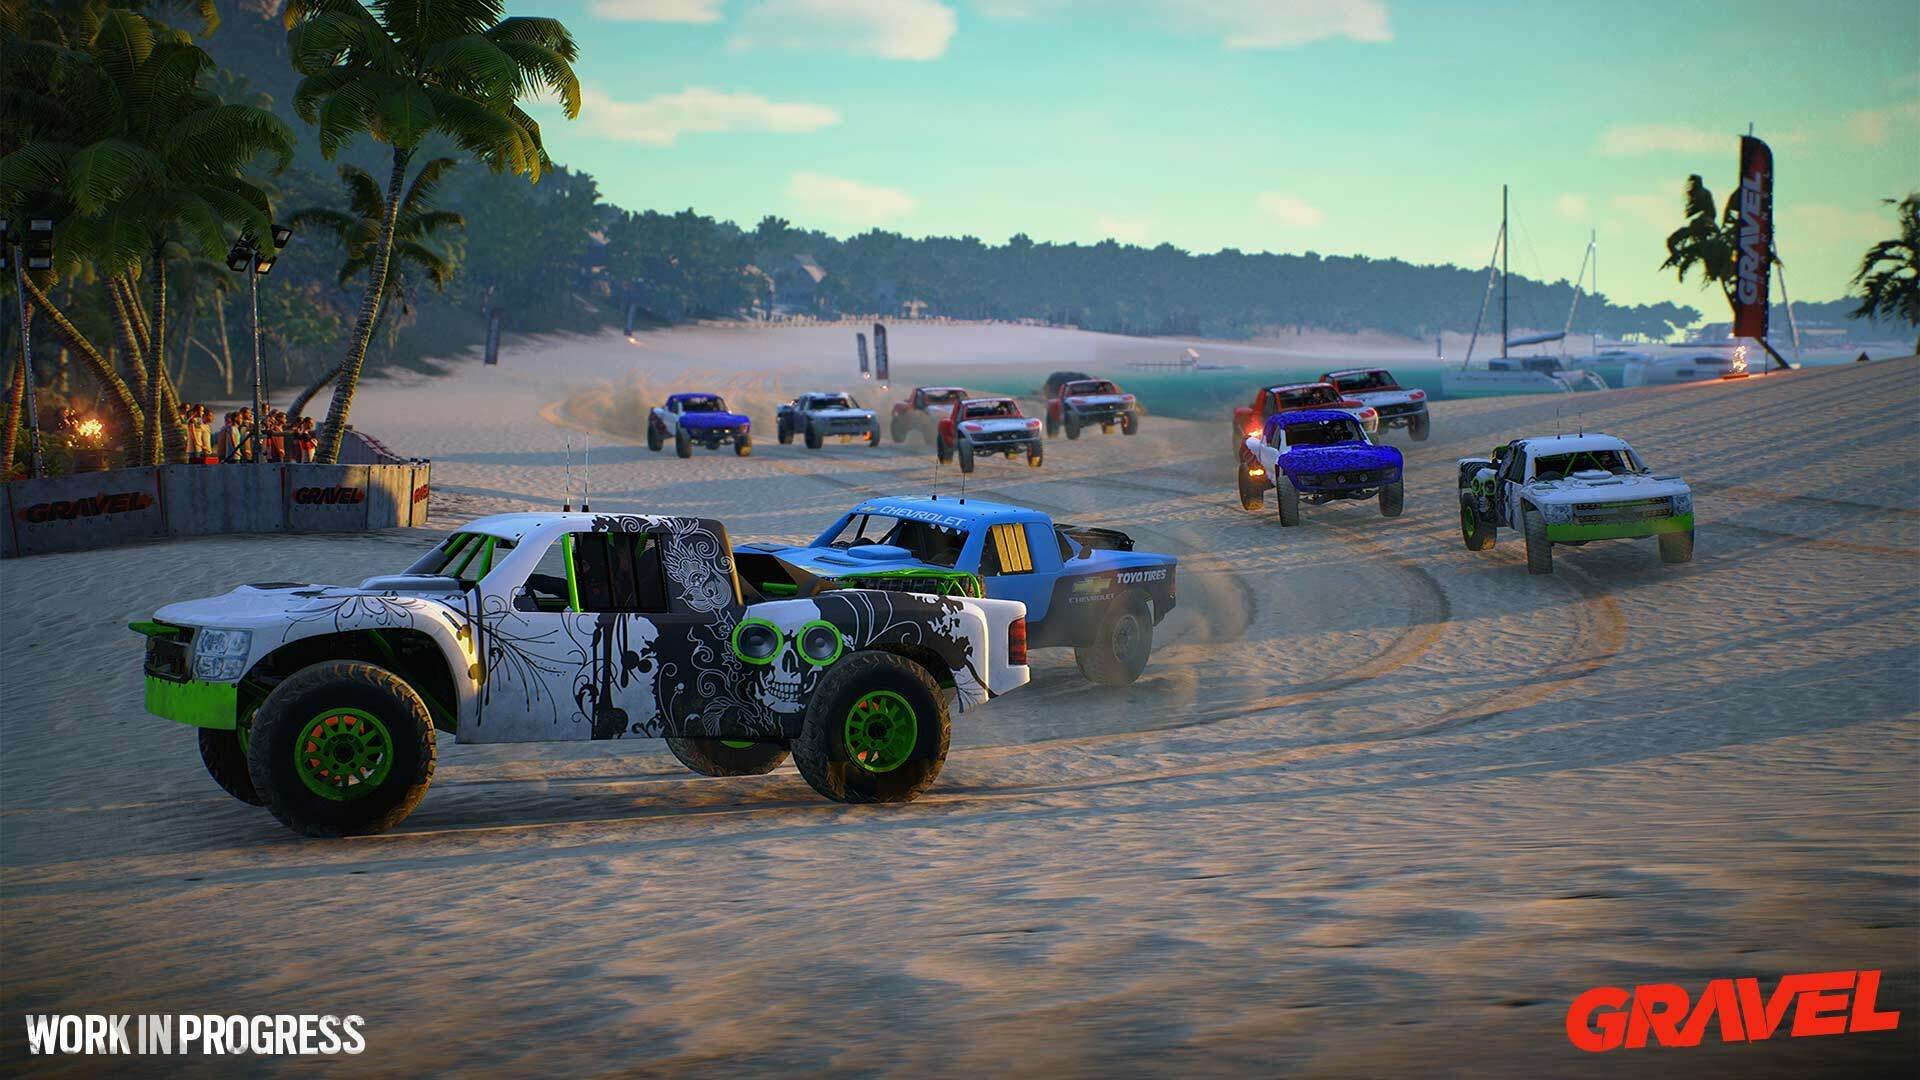 Is Gravel the Spiritual Successor to Sega Rally?